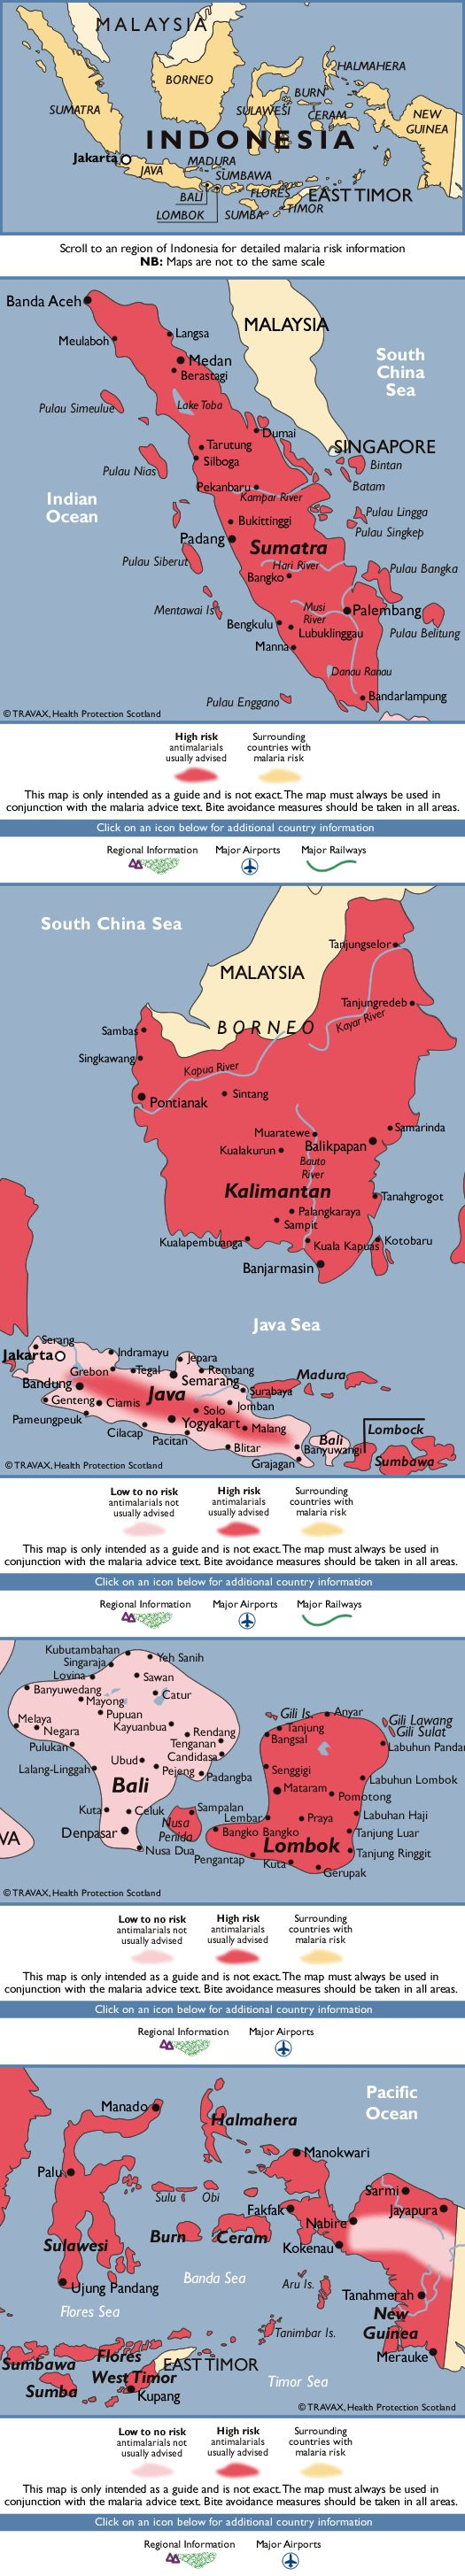 Indonesia Malaria Map   Travel Health and Safety   Pinterest   Asia, Destinations and Maps